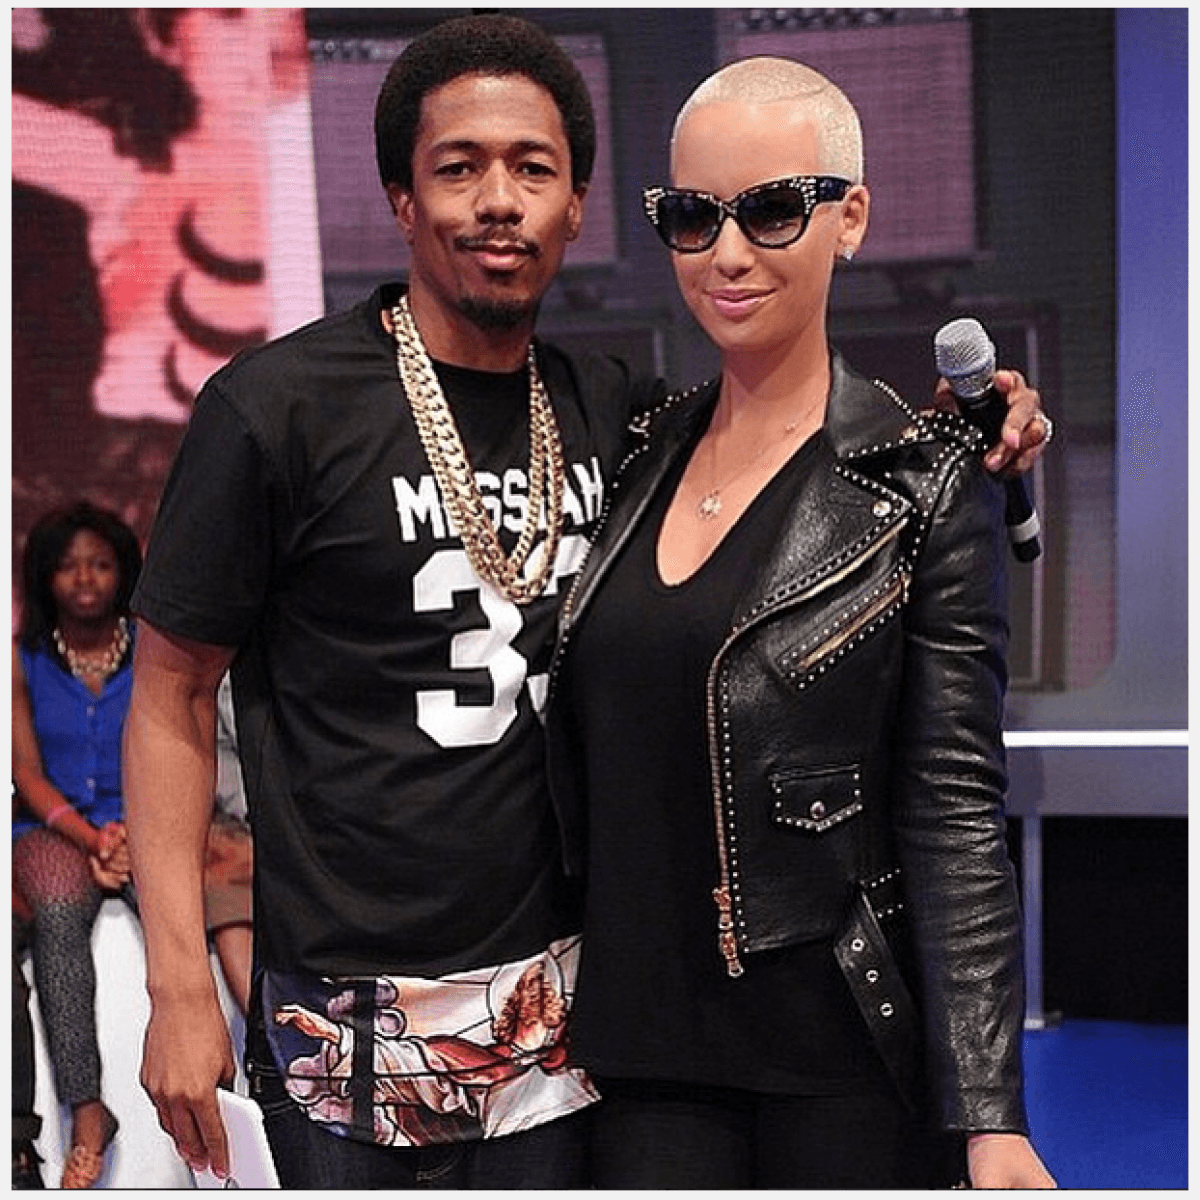 nick cannon swears hes just friends with amber rose 2015